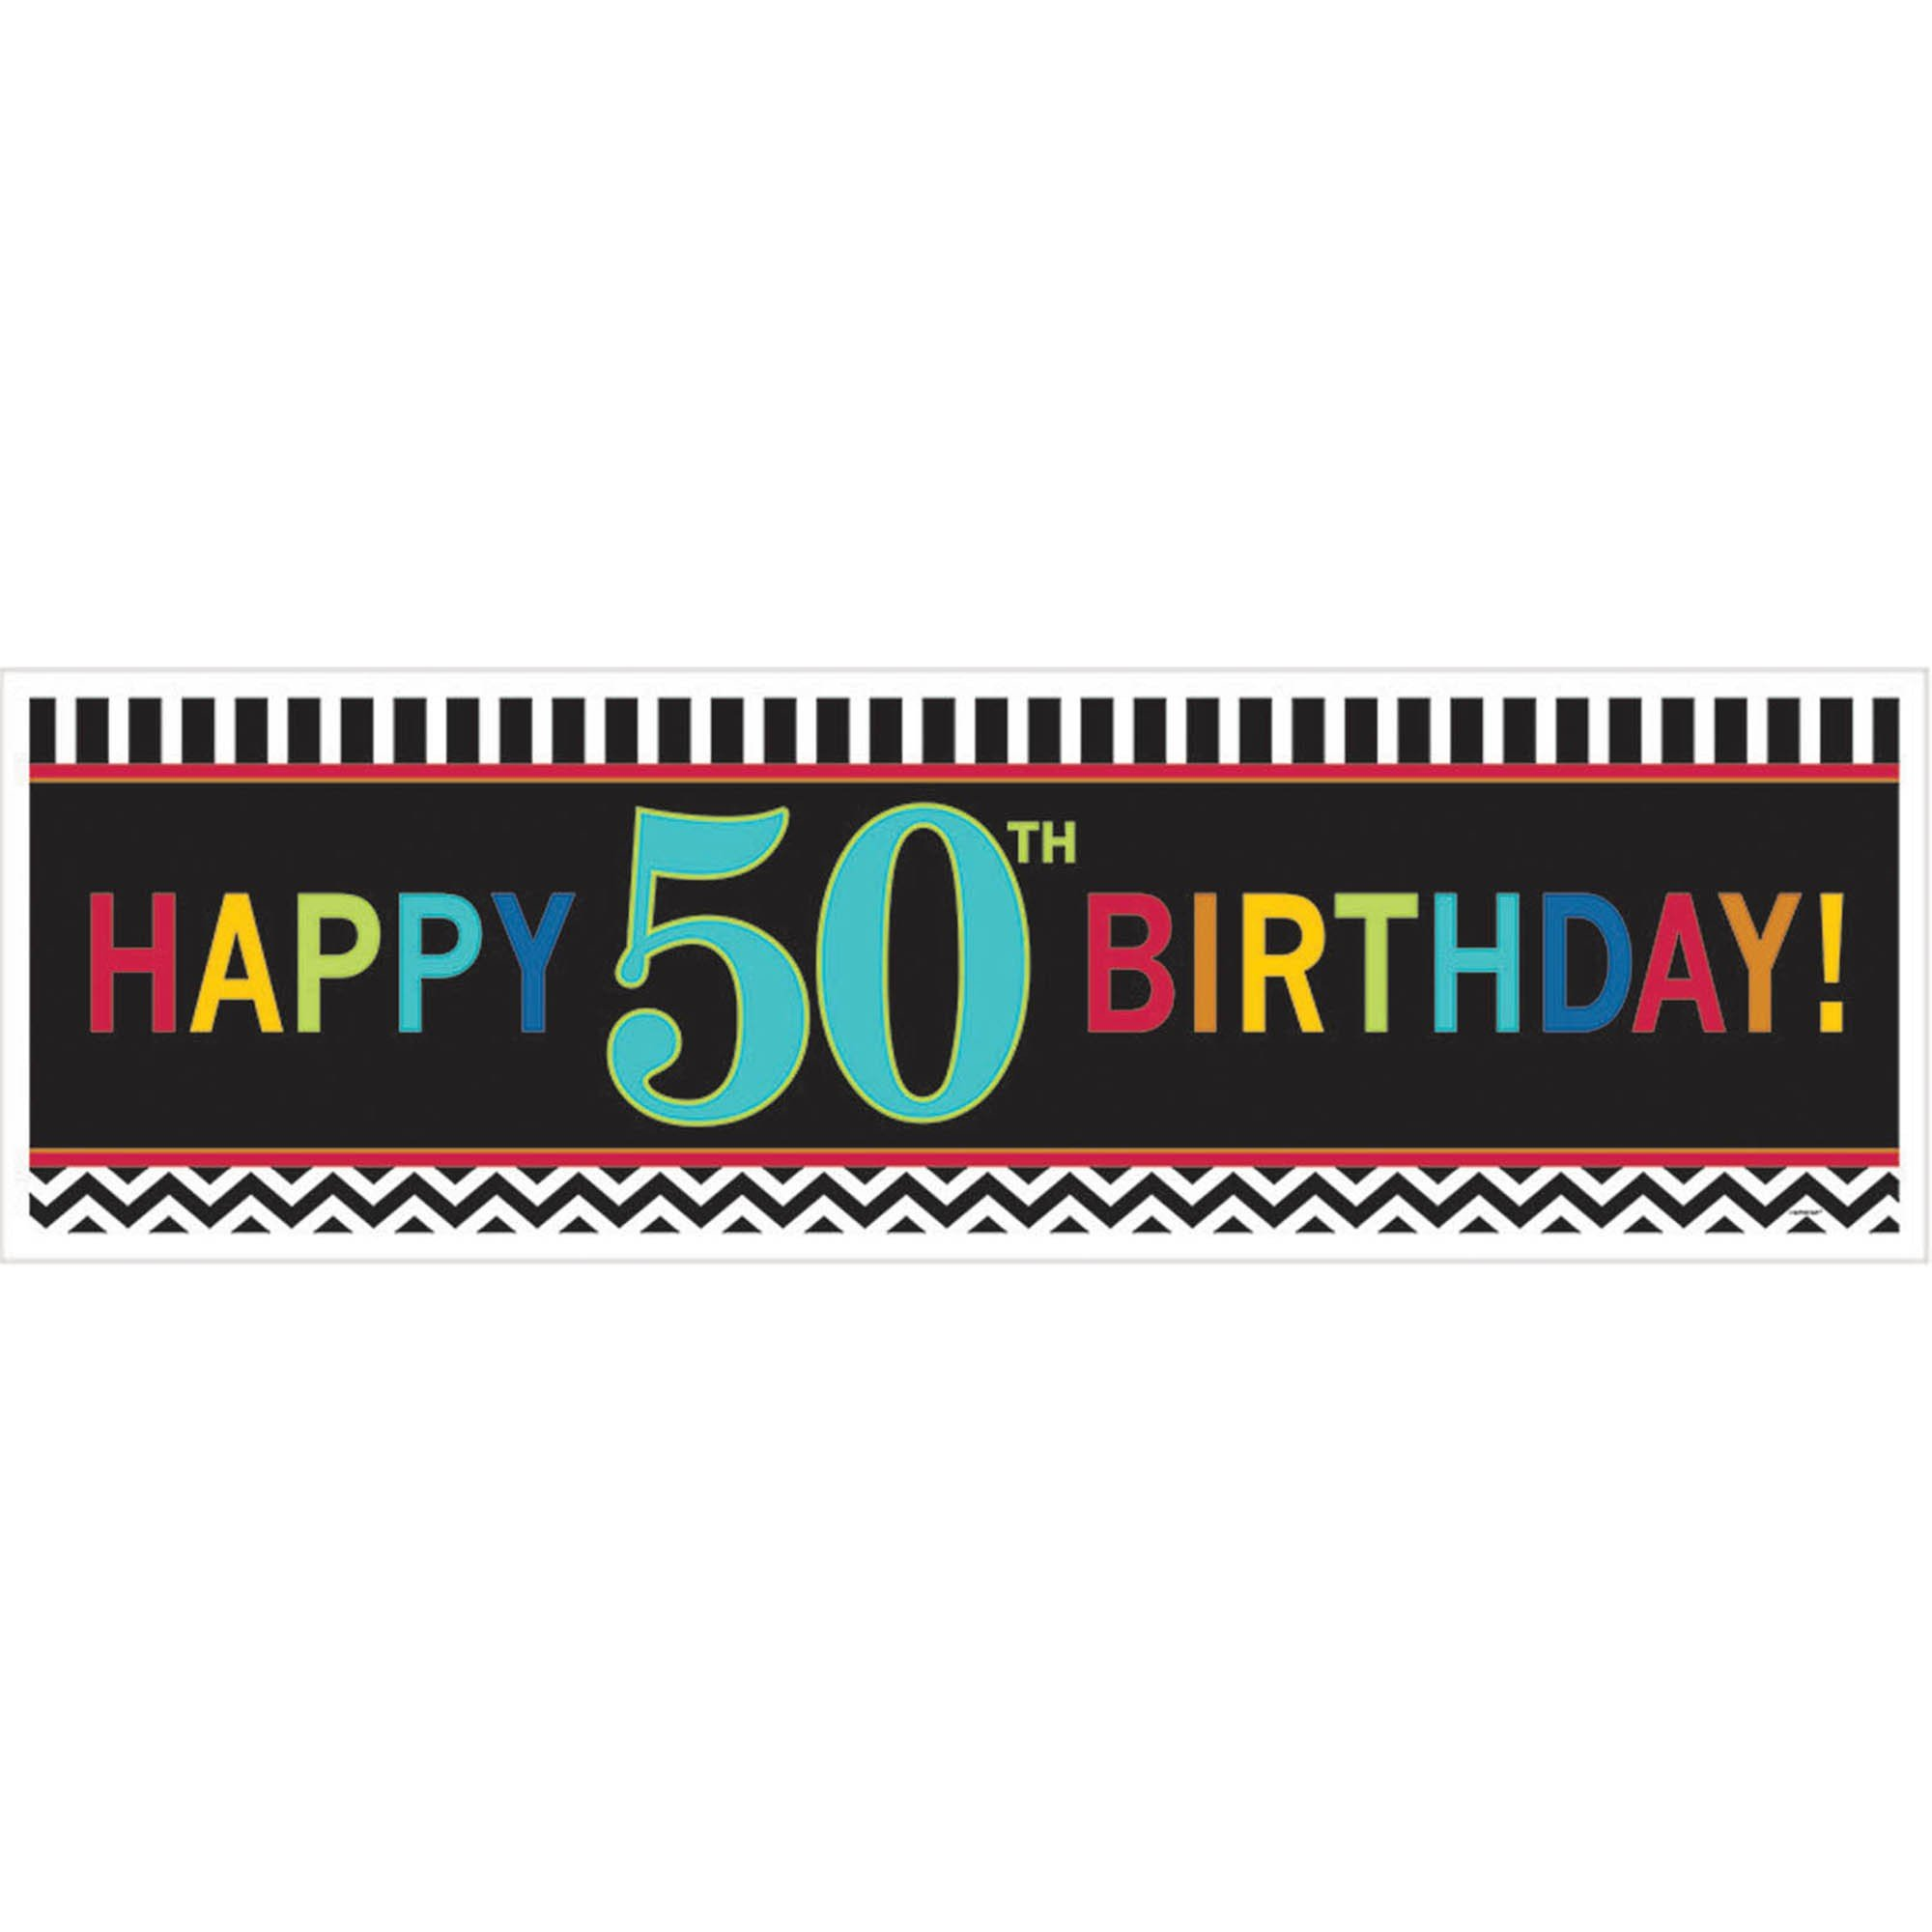 50TH BIRTHDAY GIANT BANNER - CHEVRON DESIGN